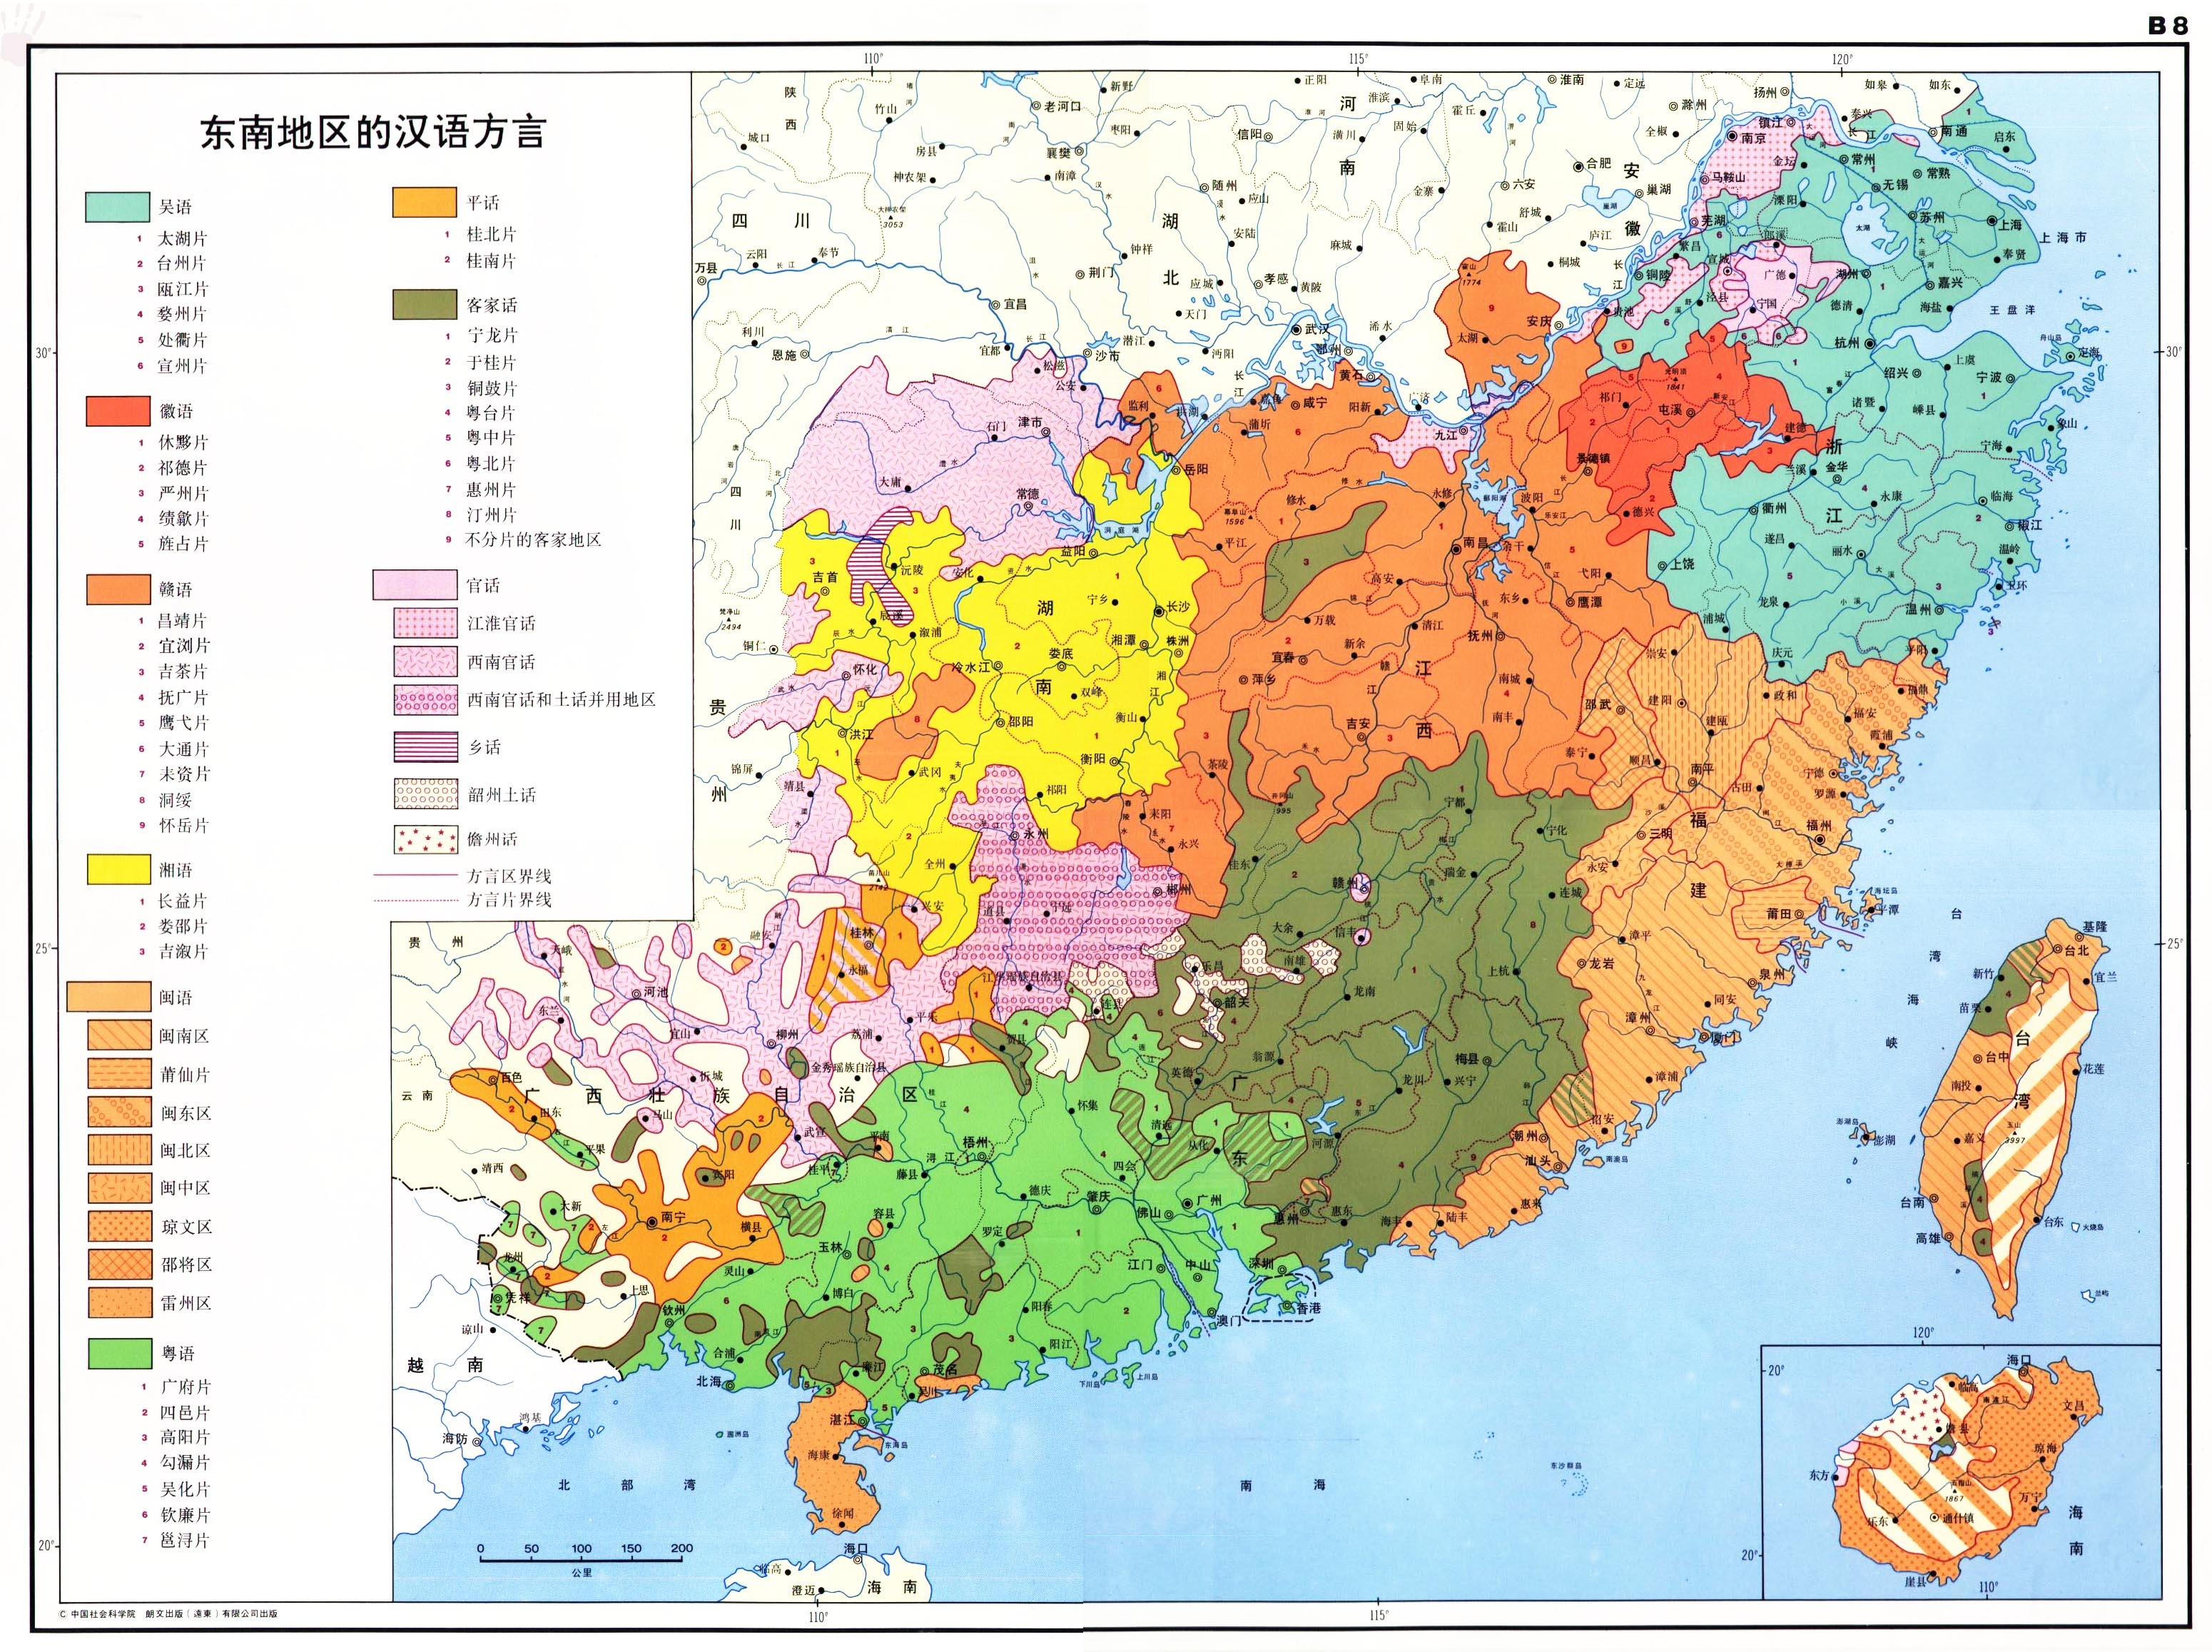 World languages map china carte linguistique linguistic map gumiabroncs Gallery